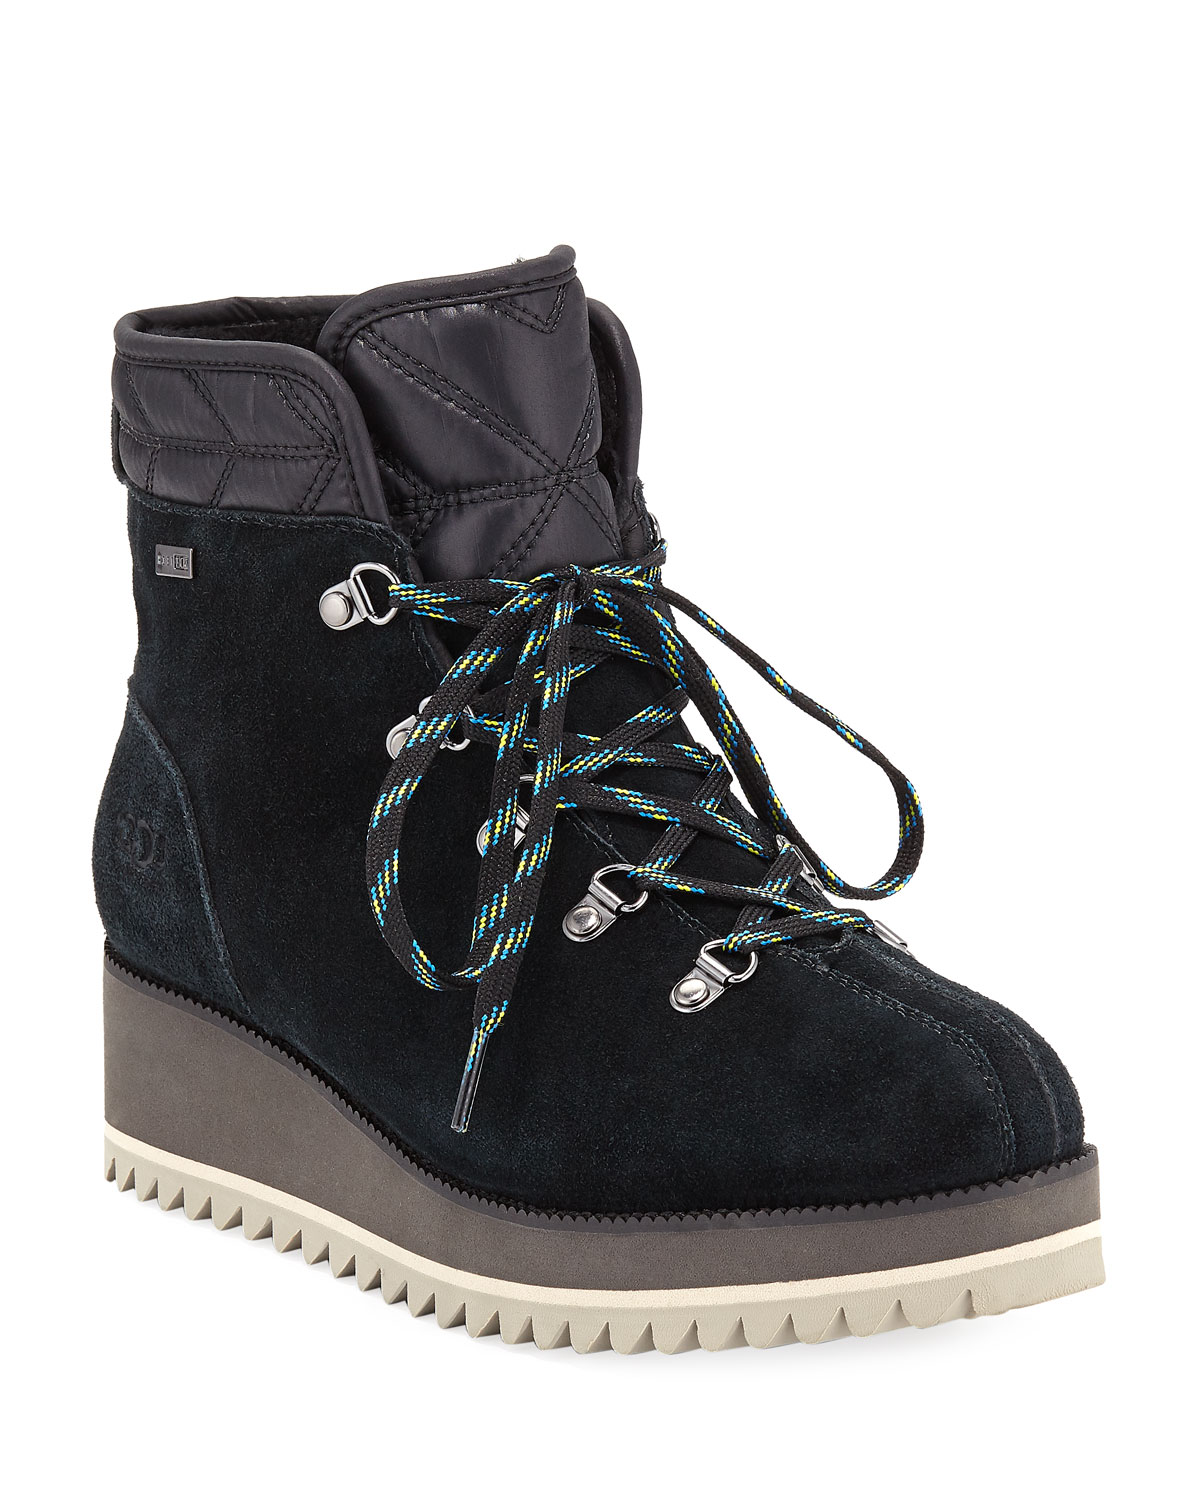 Birch Lace-Up Wedge Hiker Booties, Black